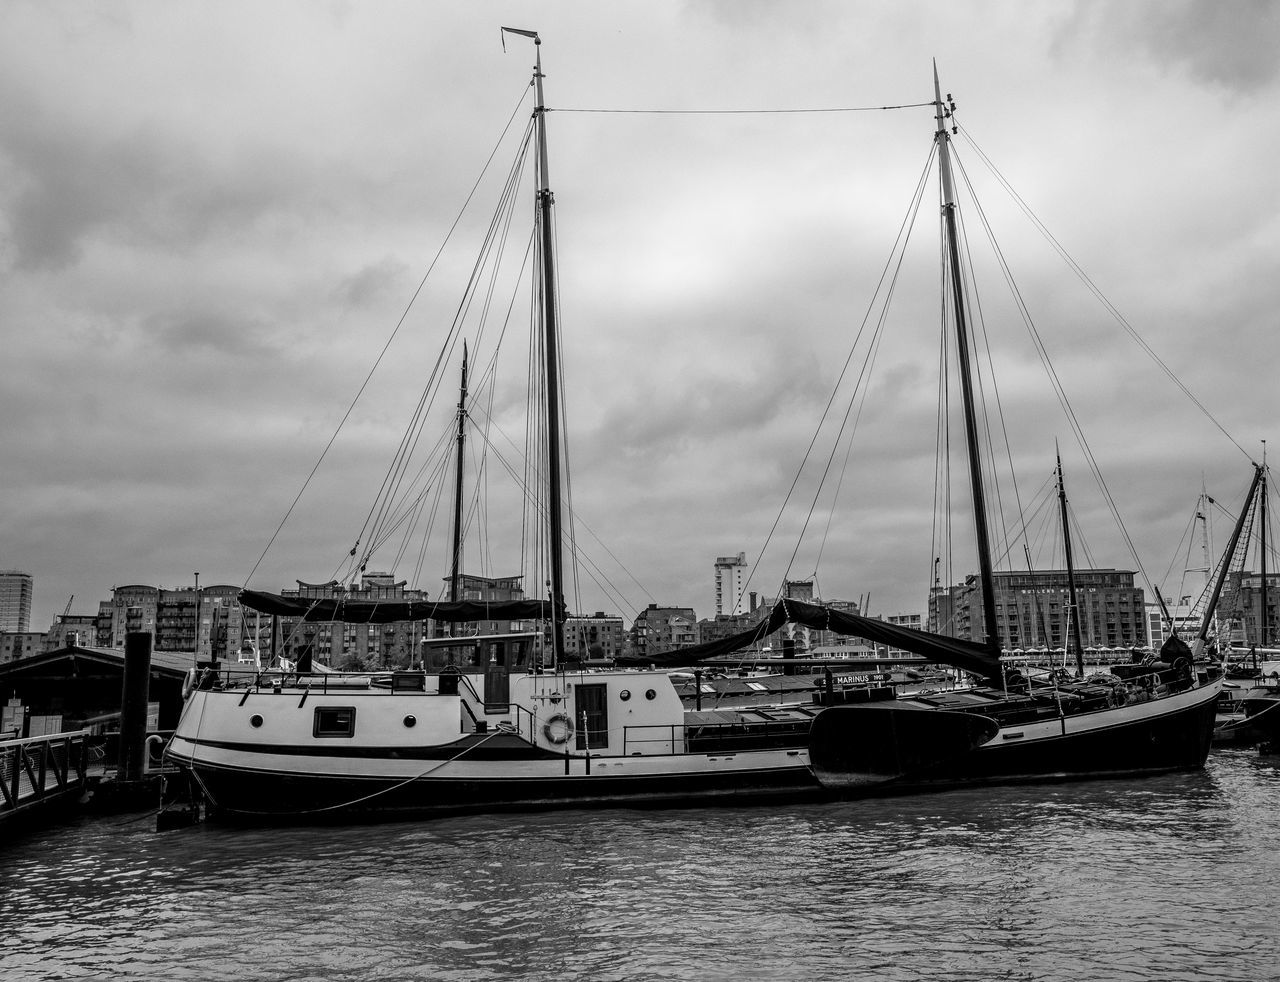 transportation, nautical vessel, sky, mode of transport, cloud - sky, water, moored, outdoors, day, no people, built structure, travel destinations, mast, harbor, river, nature, architecture, sailboat, building exterior, yacht, city, tall ship